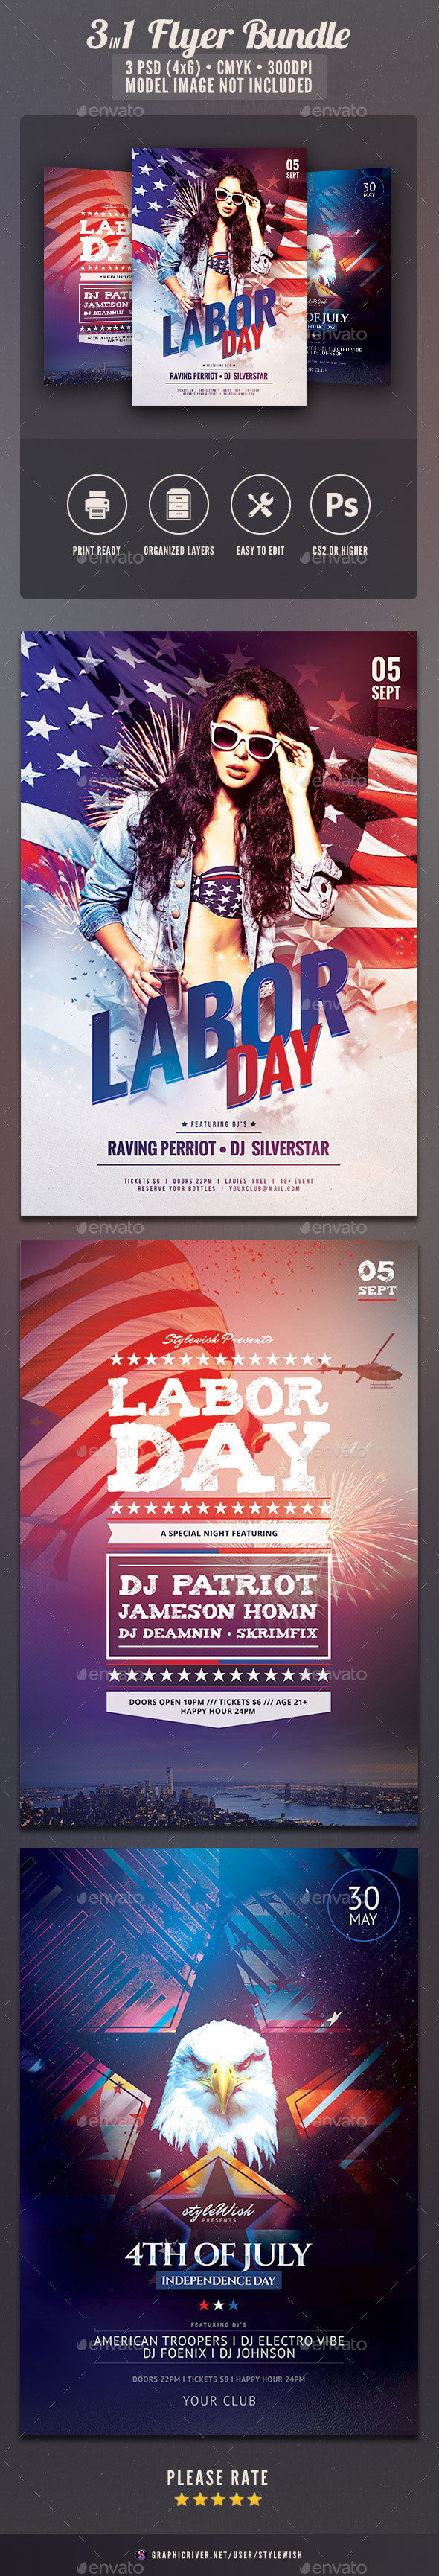 Labor Day Flyer Bundle by StyleWish (Labor Day party flyer)